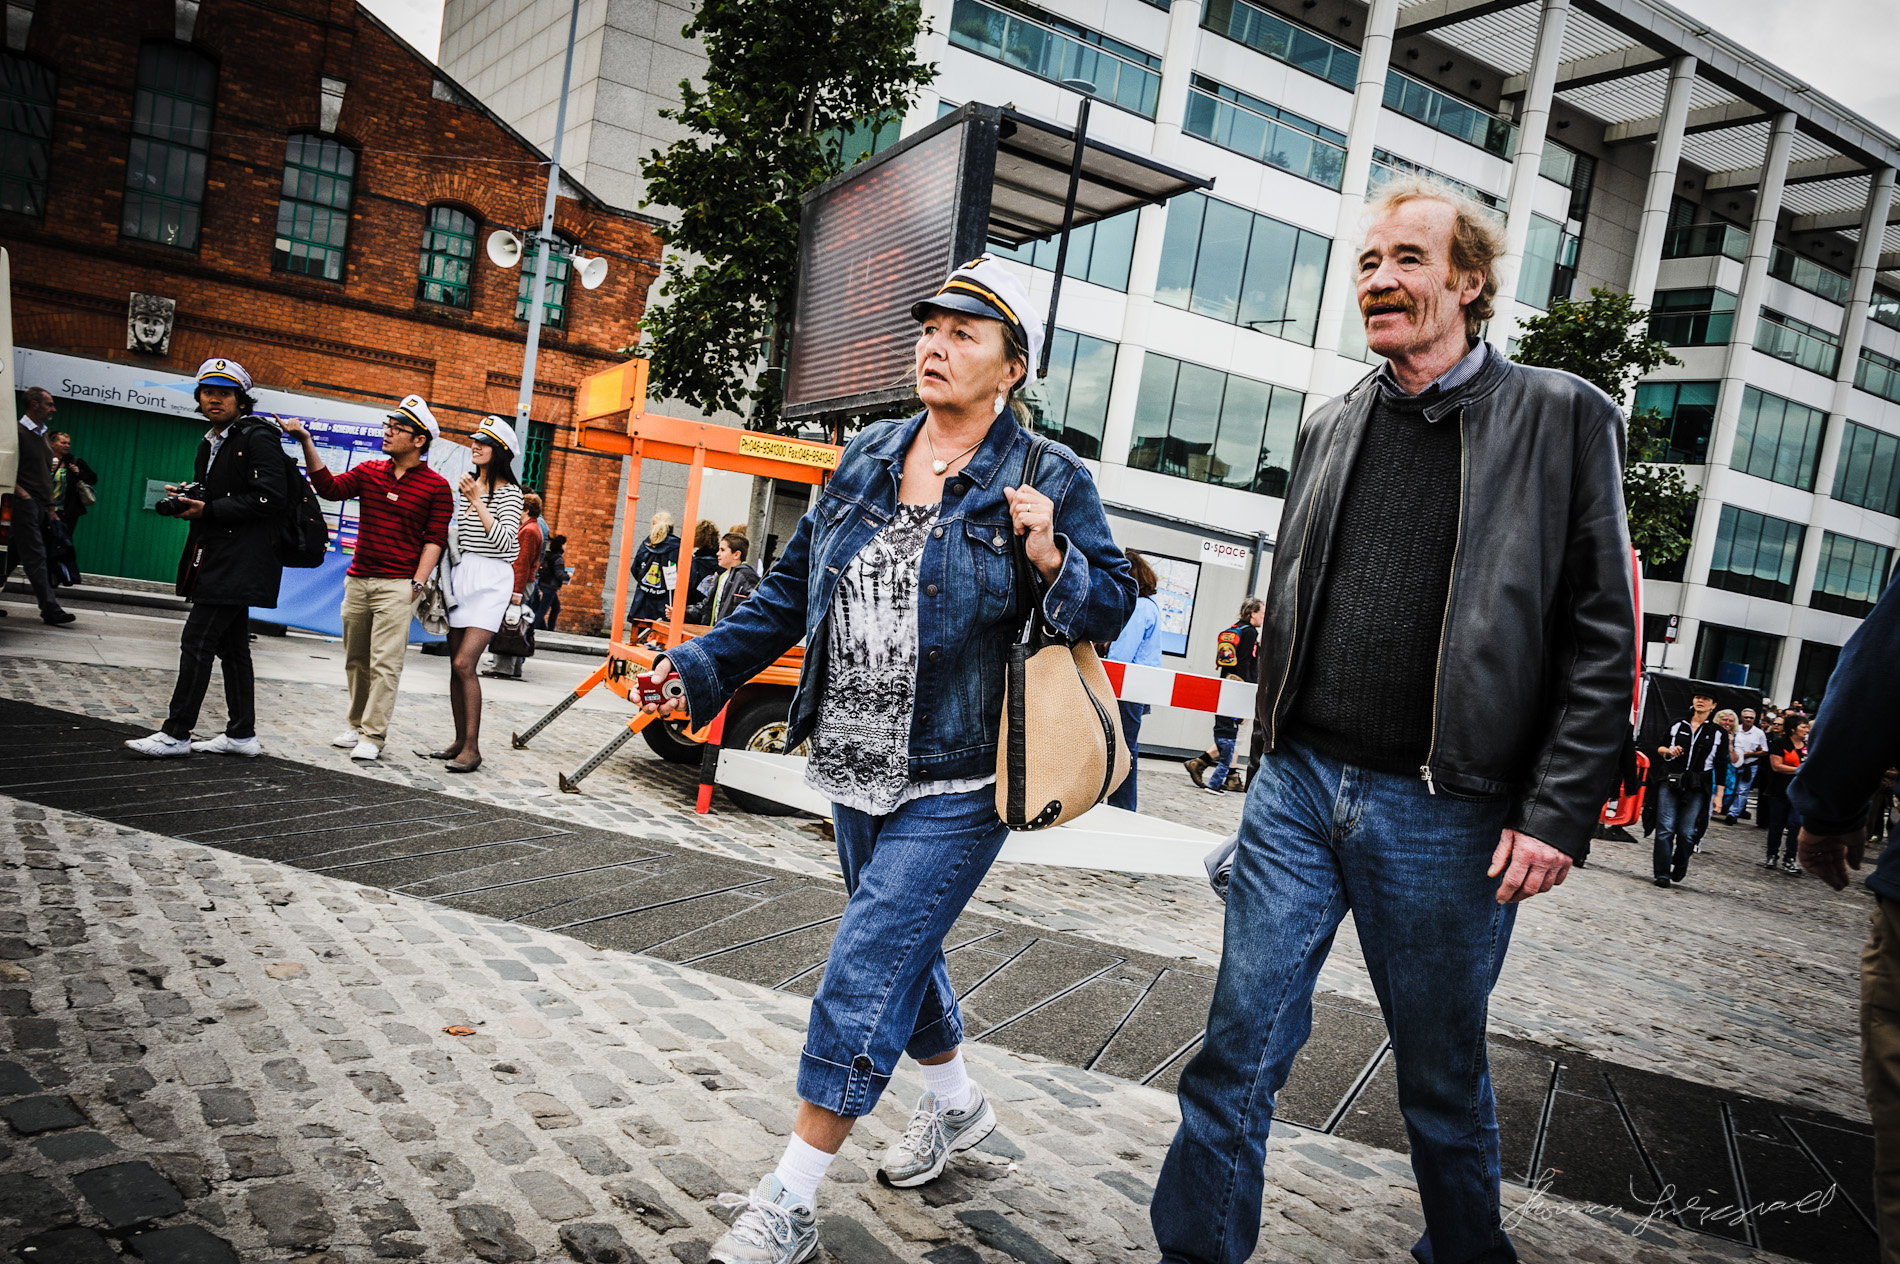 People walking with Sailor Hats - The Dublin Tall Ships Festival